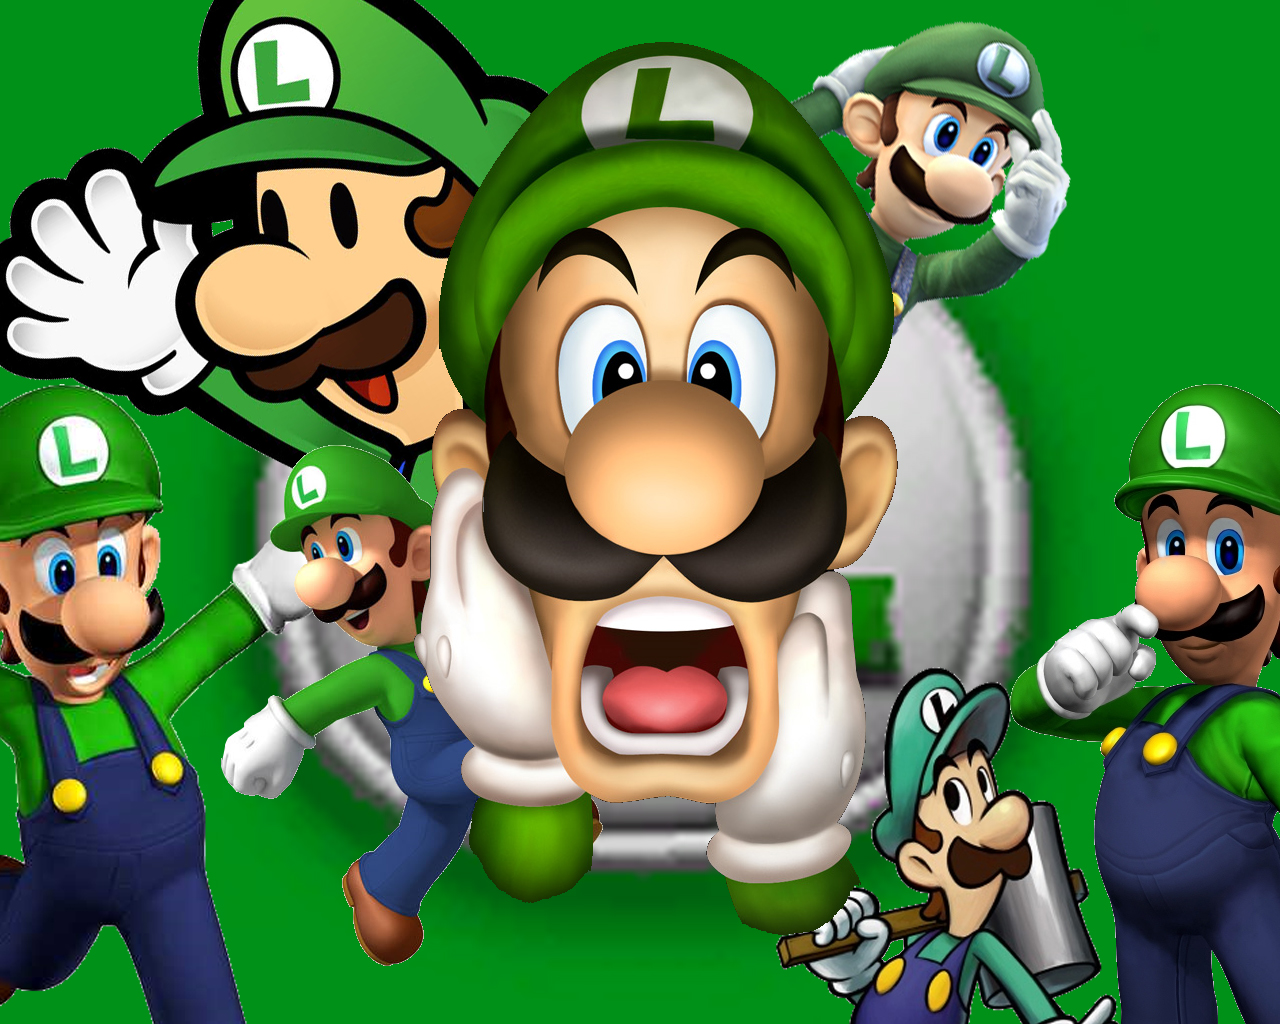 3d Wallpaper Mario Luigi Super Mario Bros Wallpaper 32954728 Fanpop